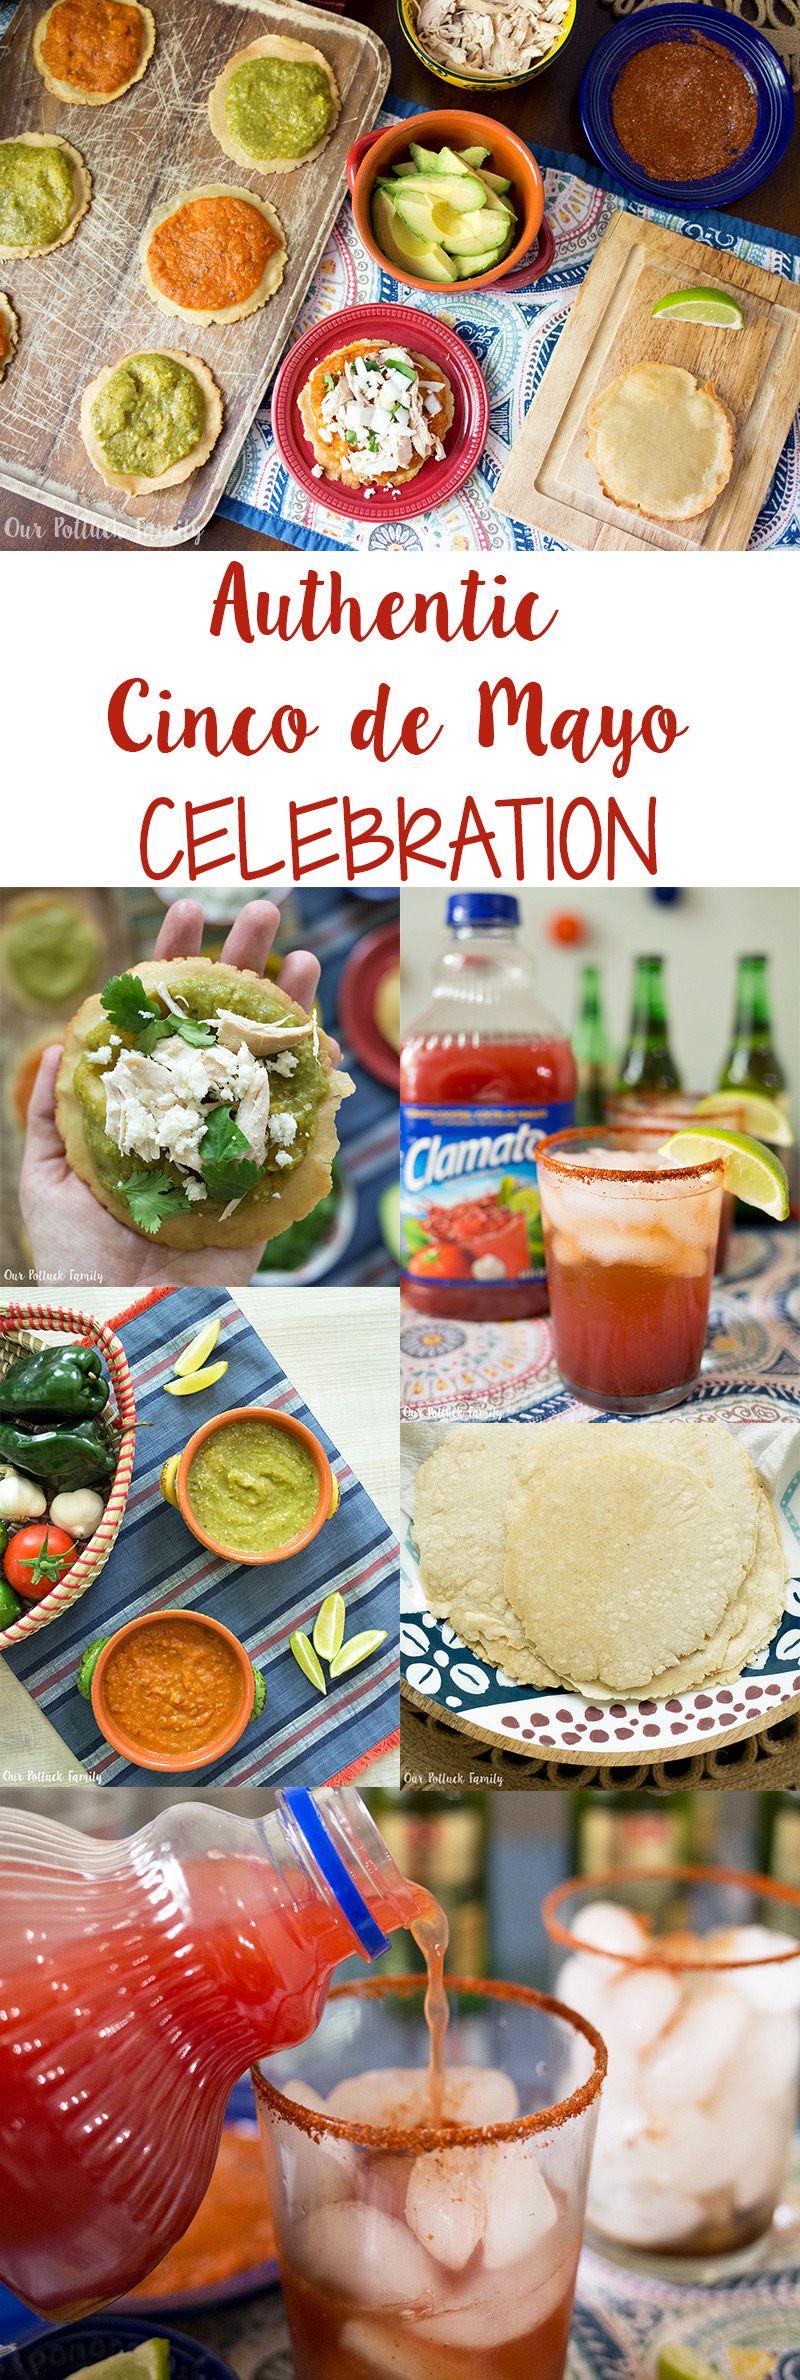 Authentic Cinco de Mayo Celebration